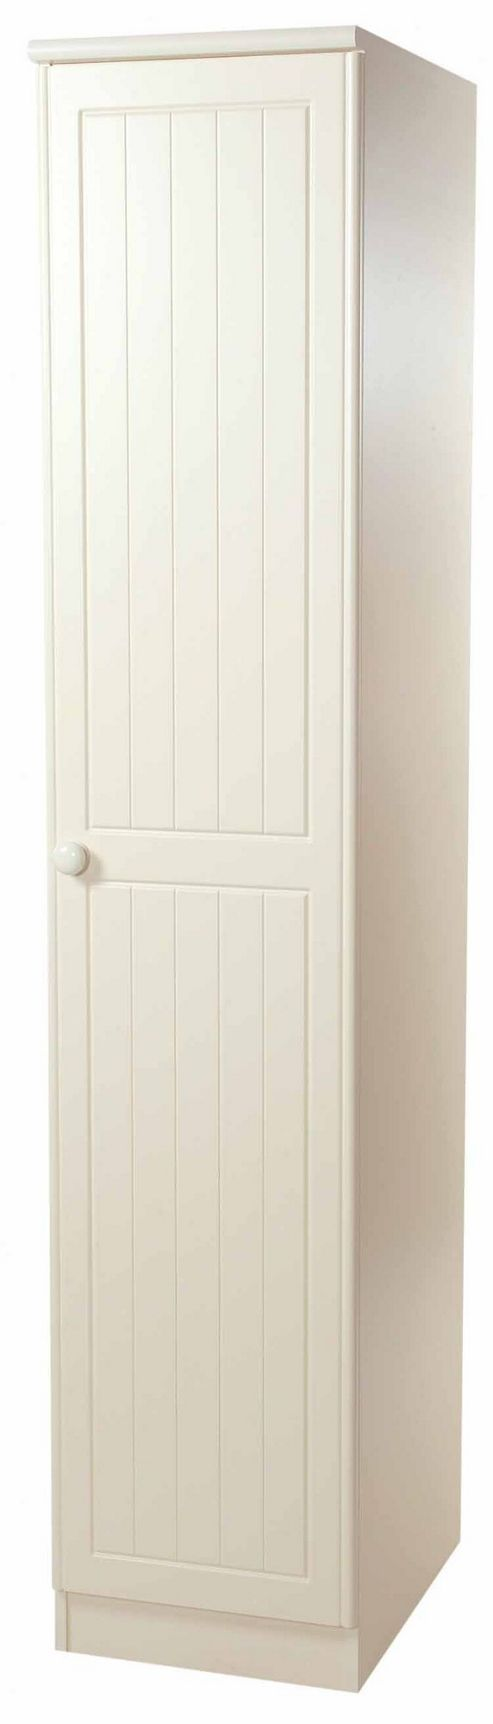 Welcome Furniture Warwick Tall Single Wardrobe - Light Oak